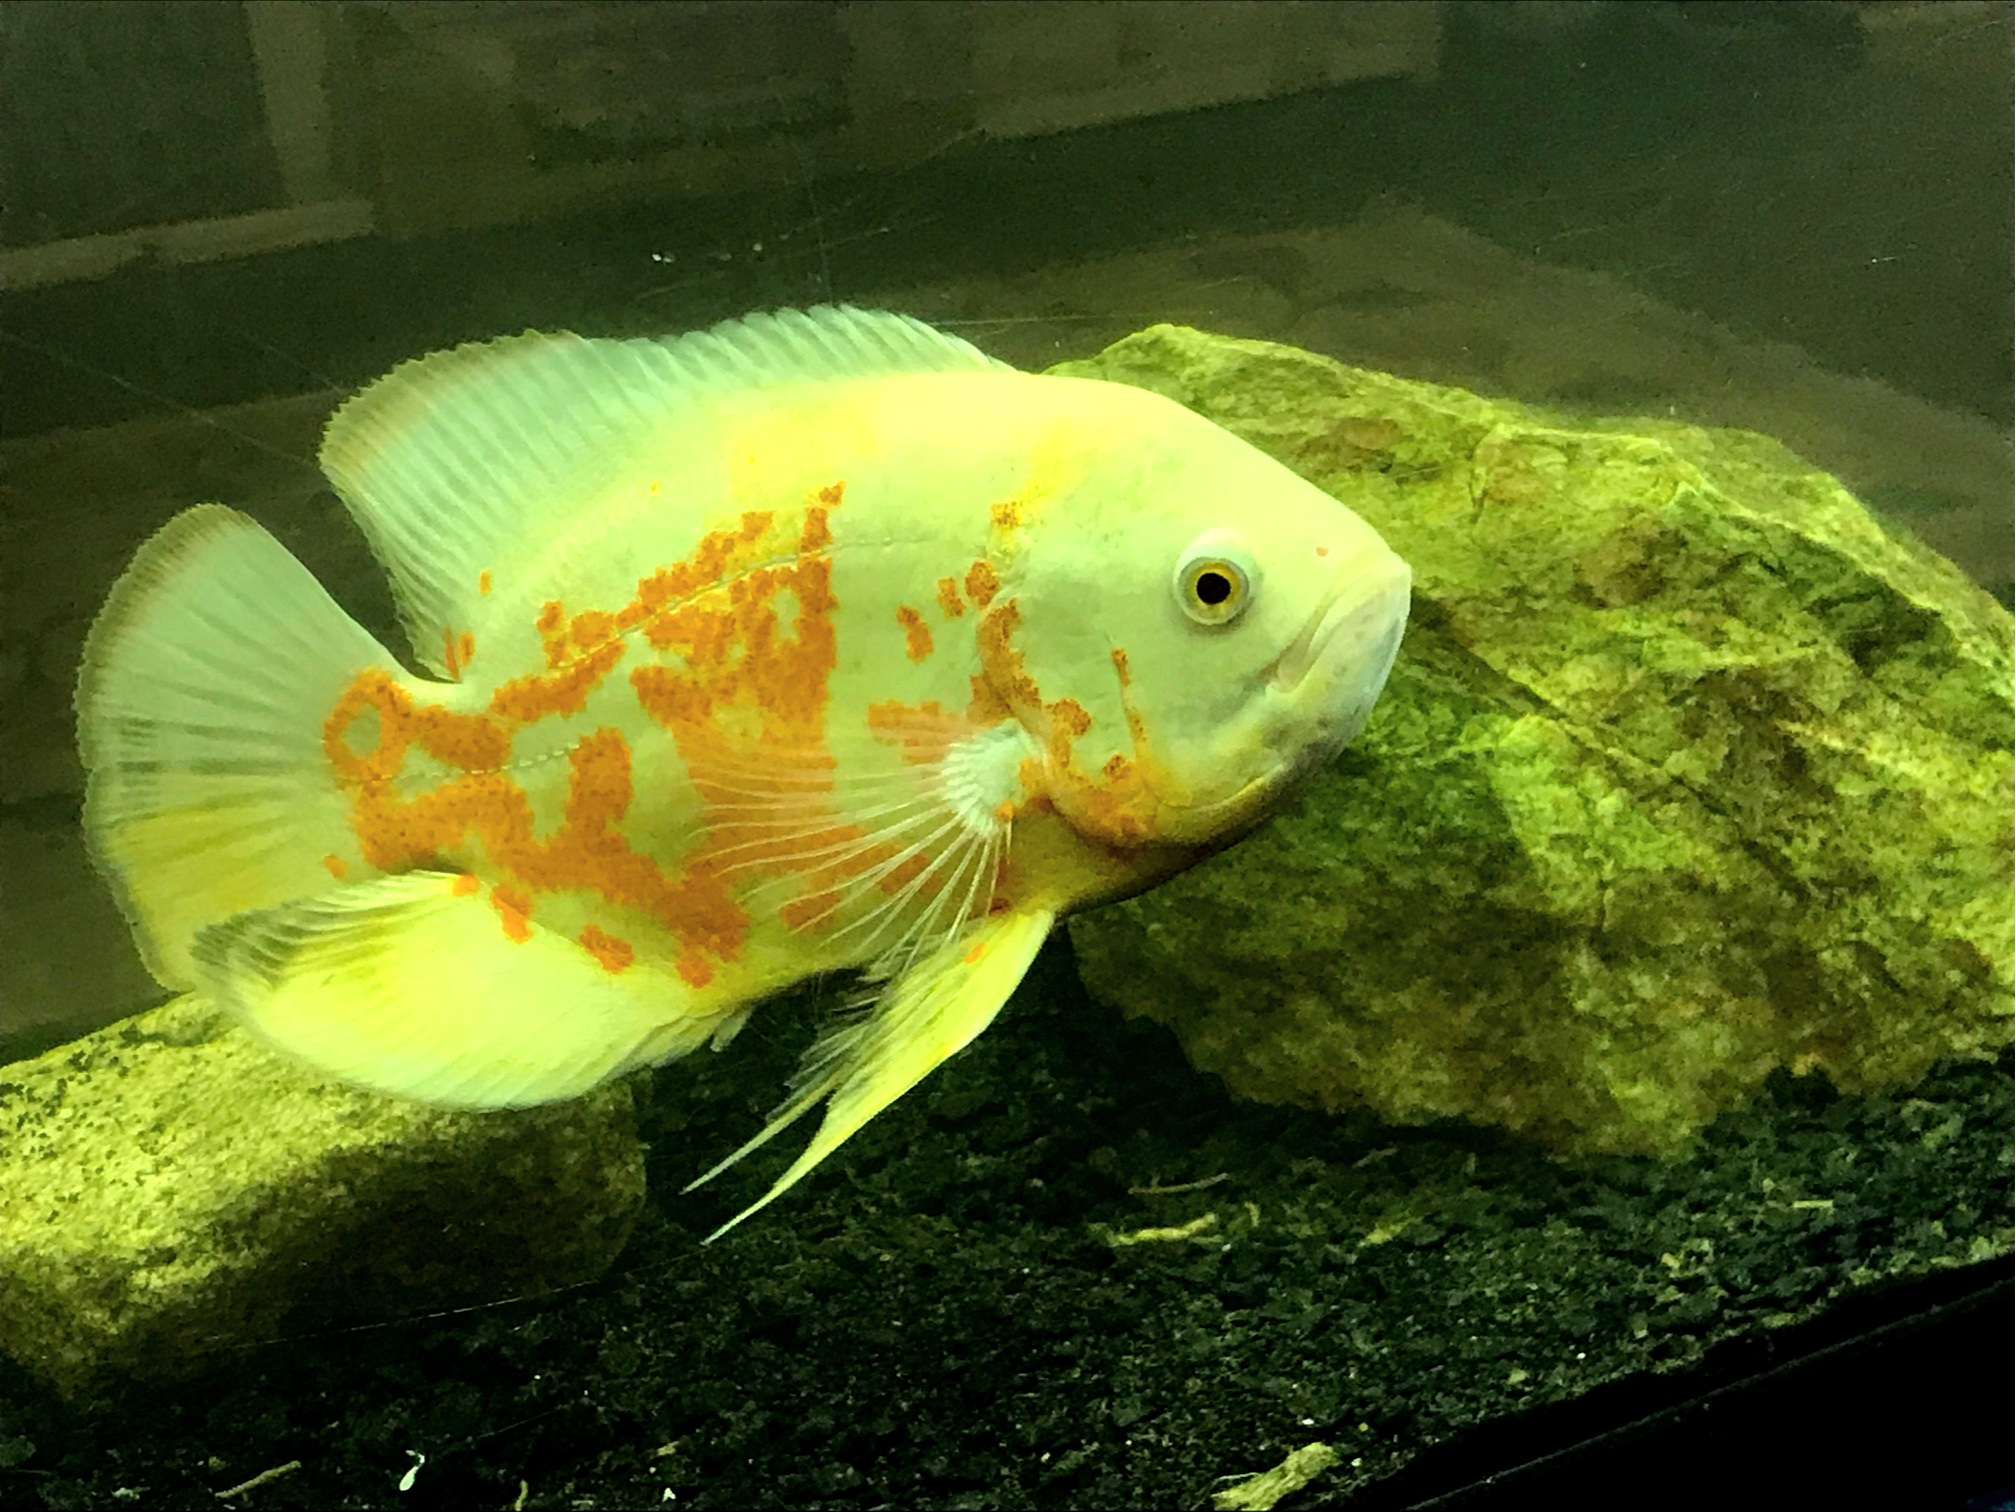 Monday, Wednesday, and Friday - Fish, turtles, toads, salamanders and some reptiles at 4:00 PM!